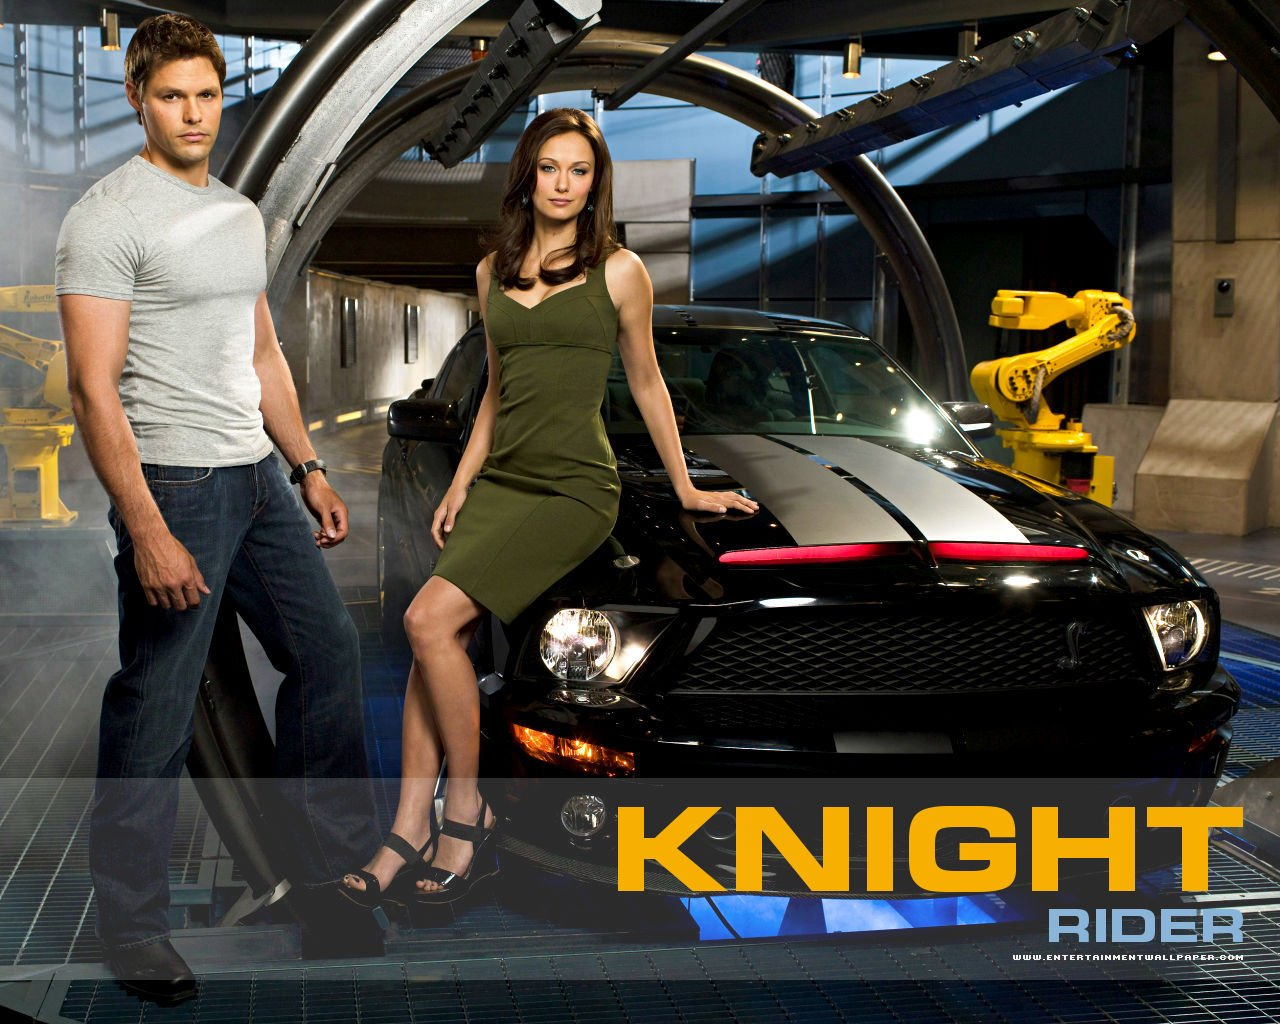 knight rider wallpaper hd 1280x1024